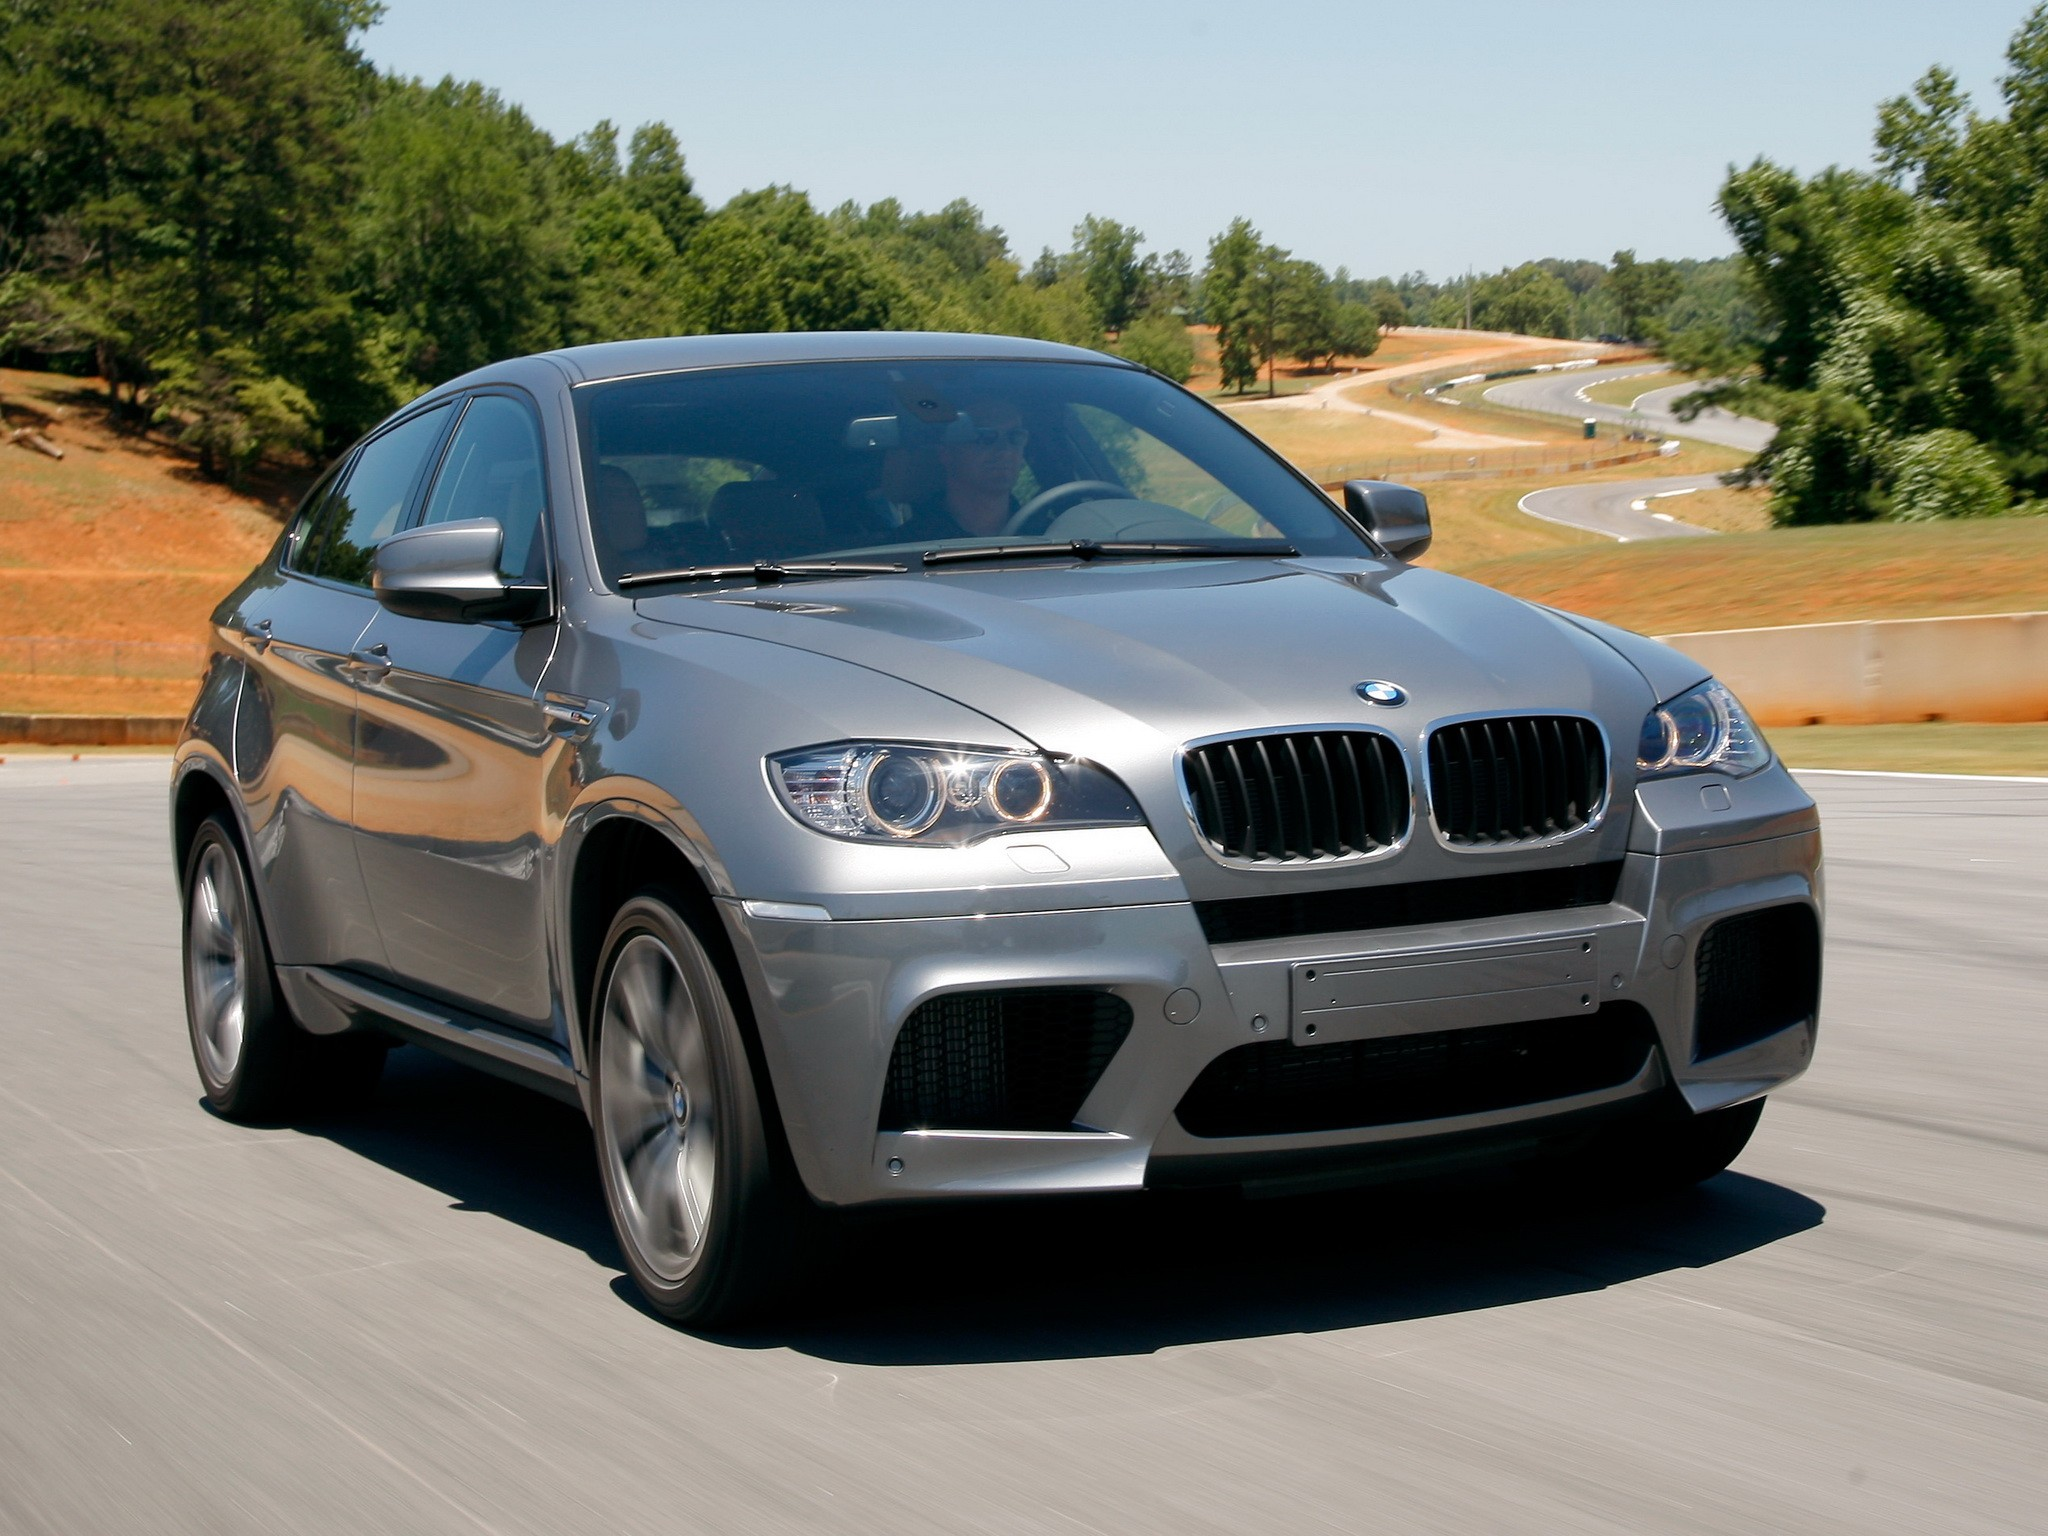 Bmw X6m Specs Amp Photos 2009 2010 2011 2012 2013